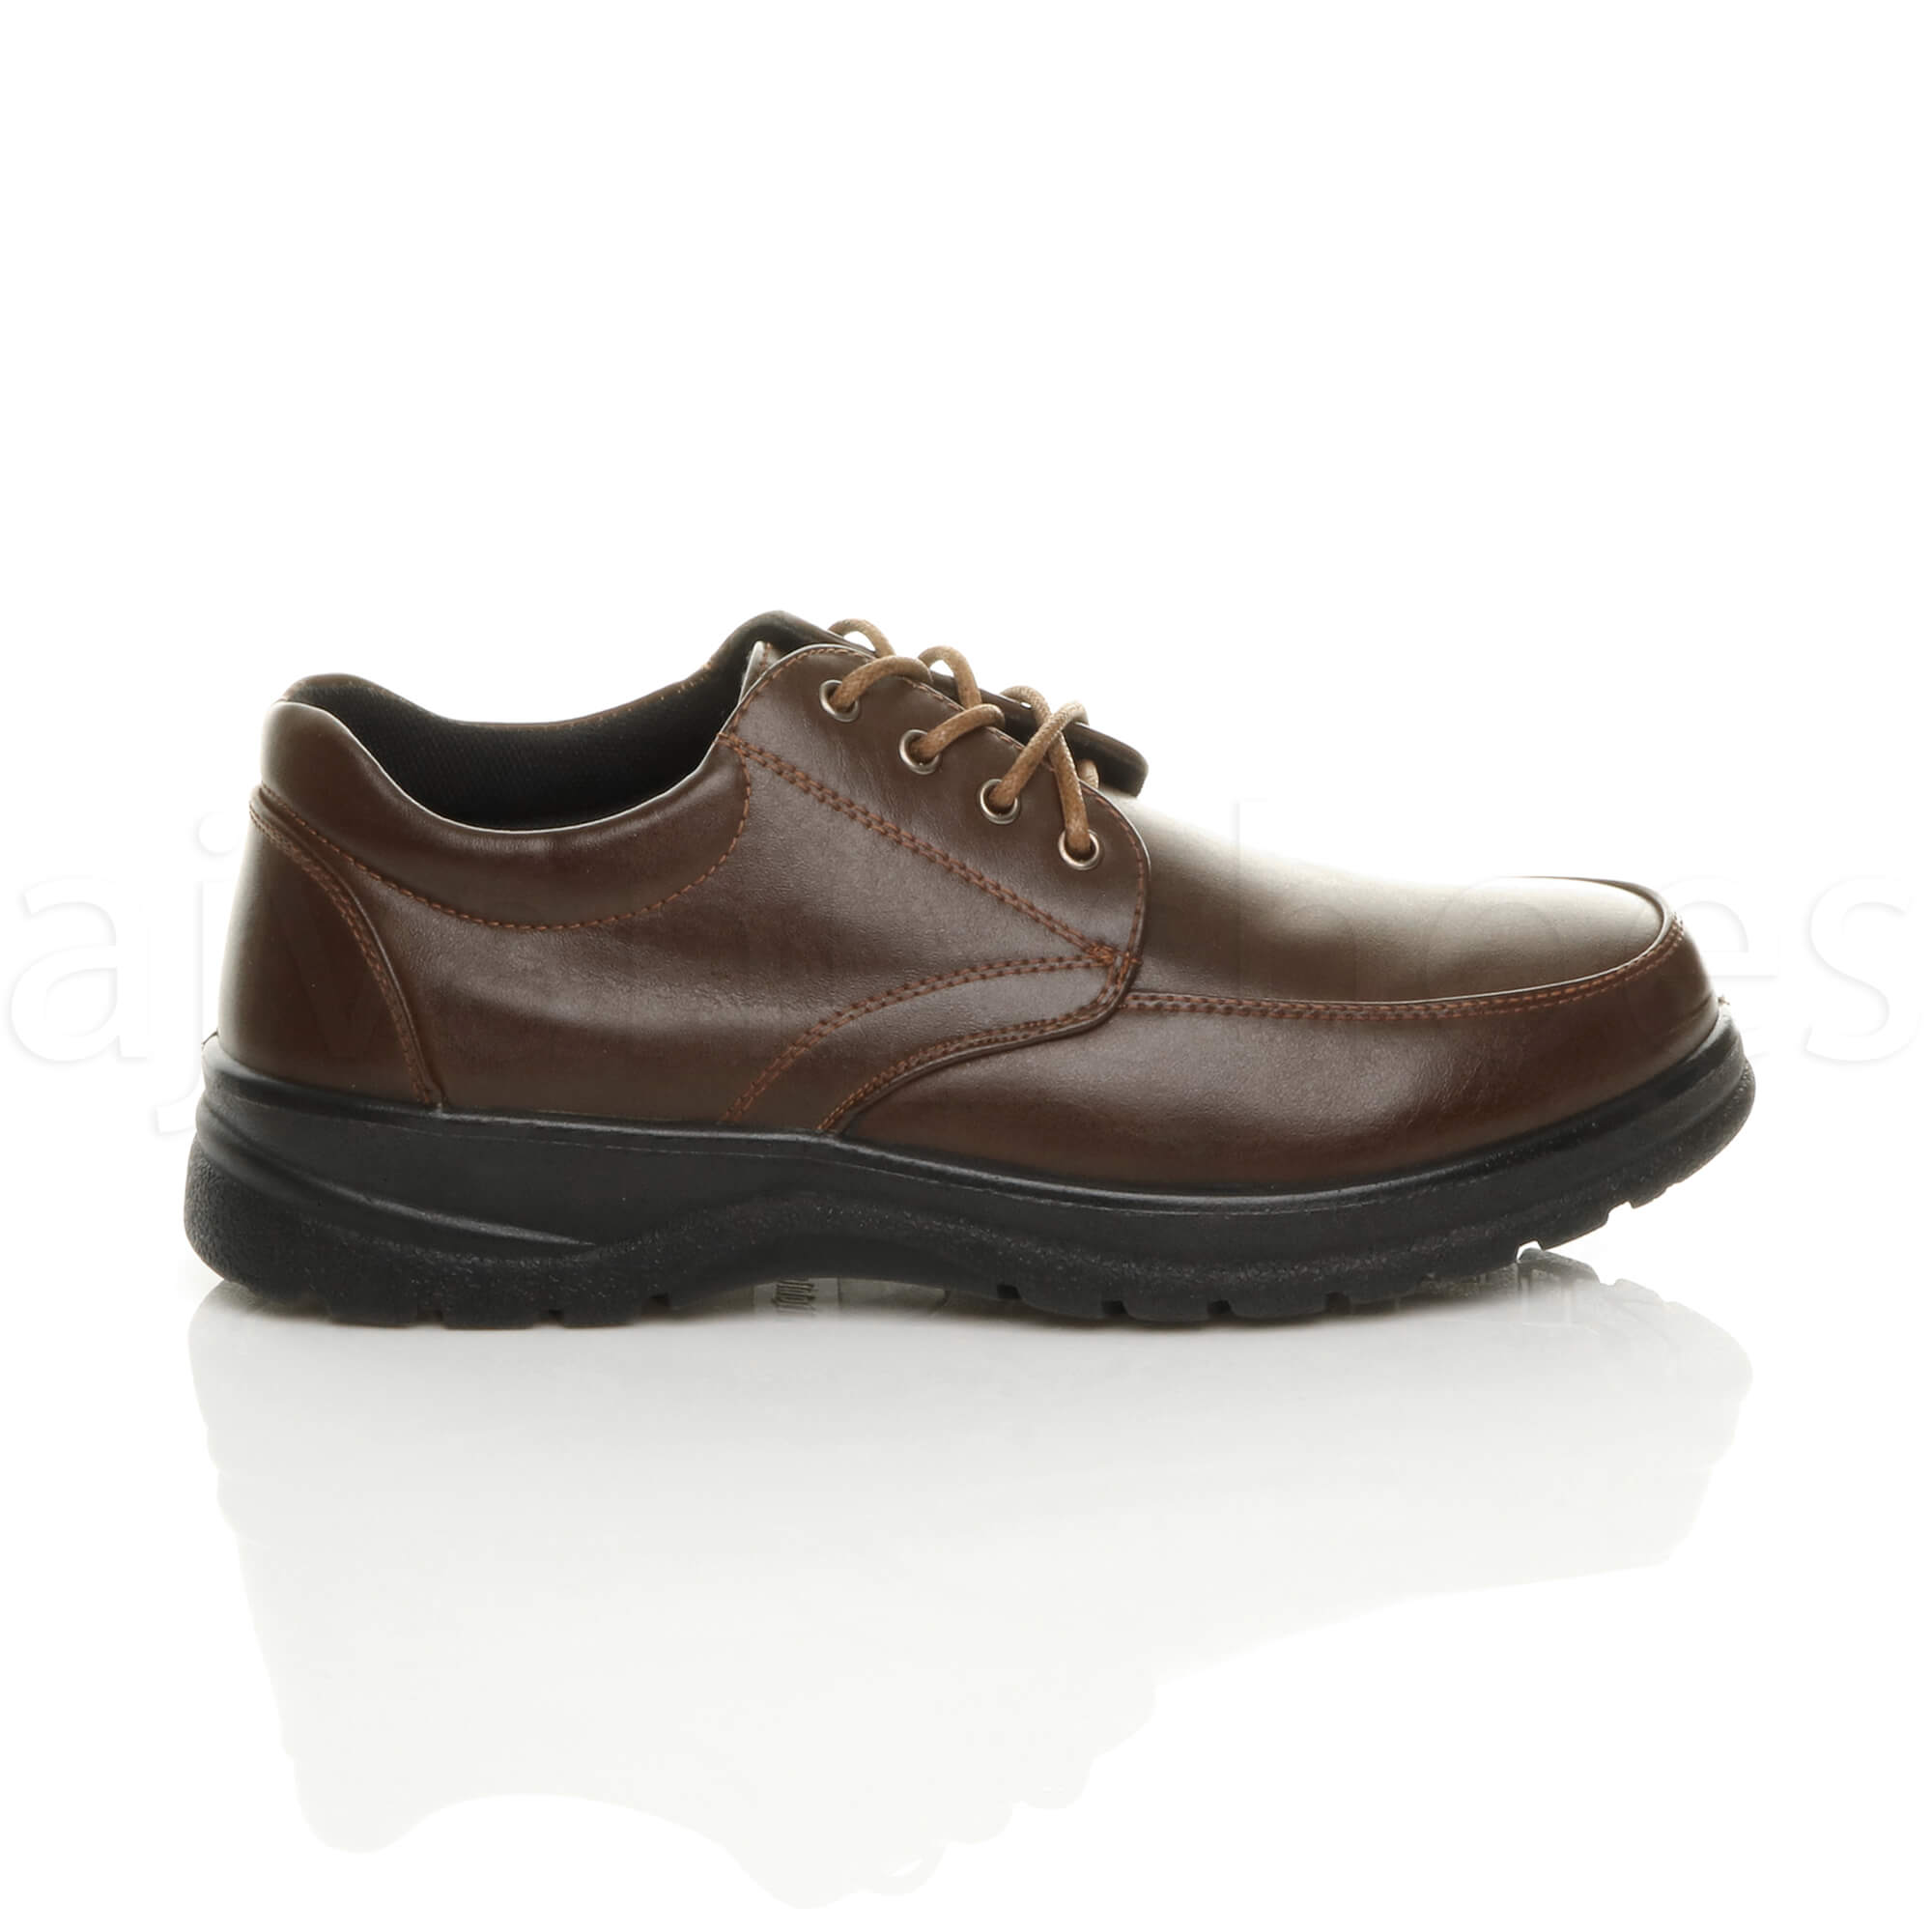 MENS-LACE-UP-CASUAL-MEMORY-FOAM-INSOLE-COMFORT-CUSHIONED-WORK-SHOES-SIZE thumbnail 11